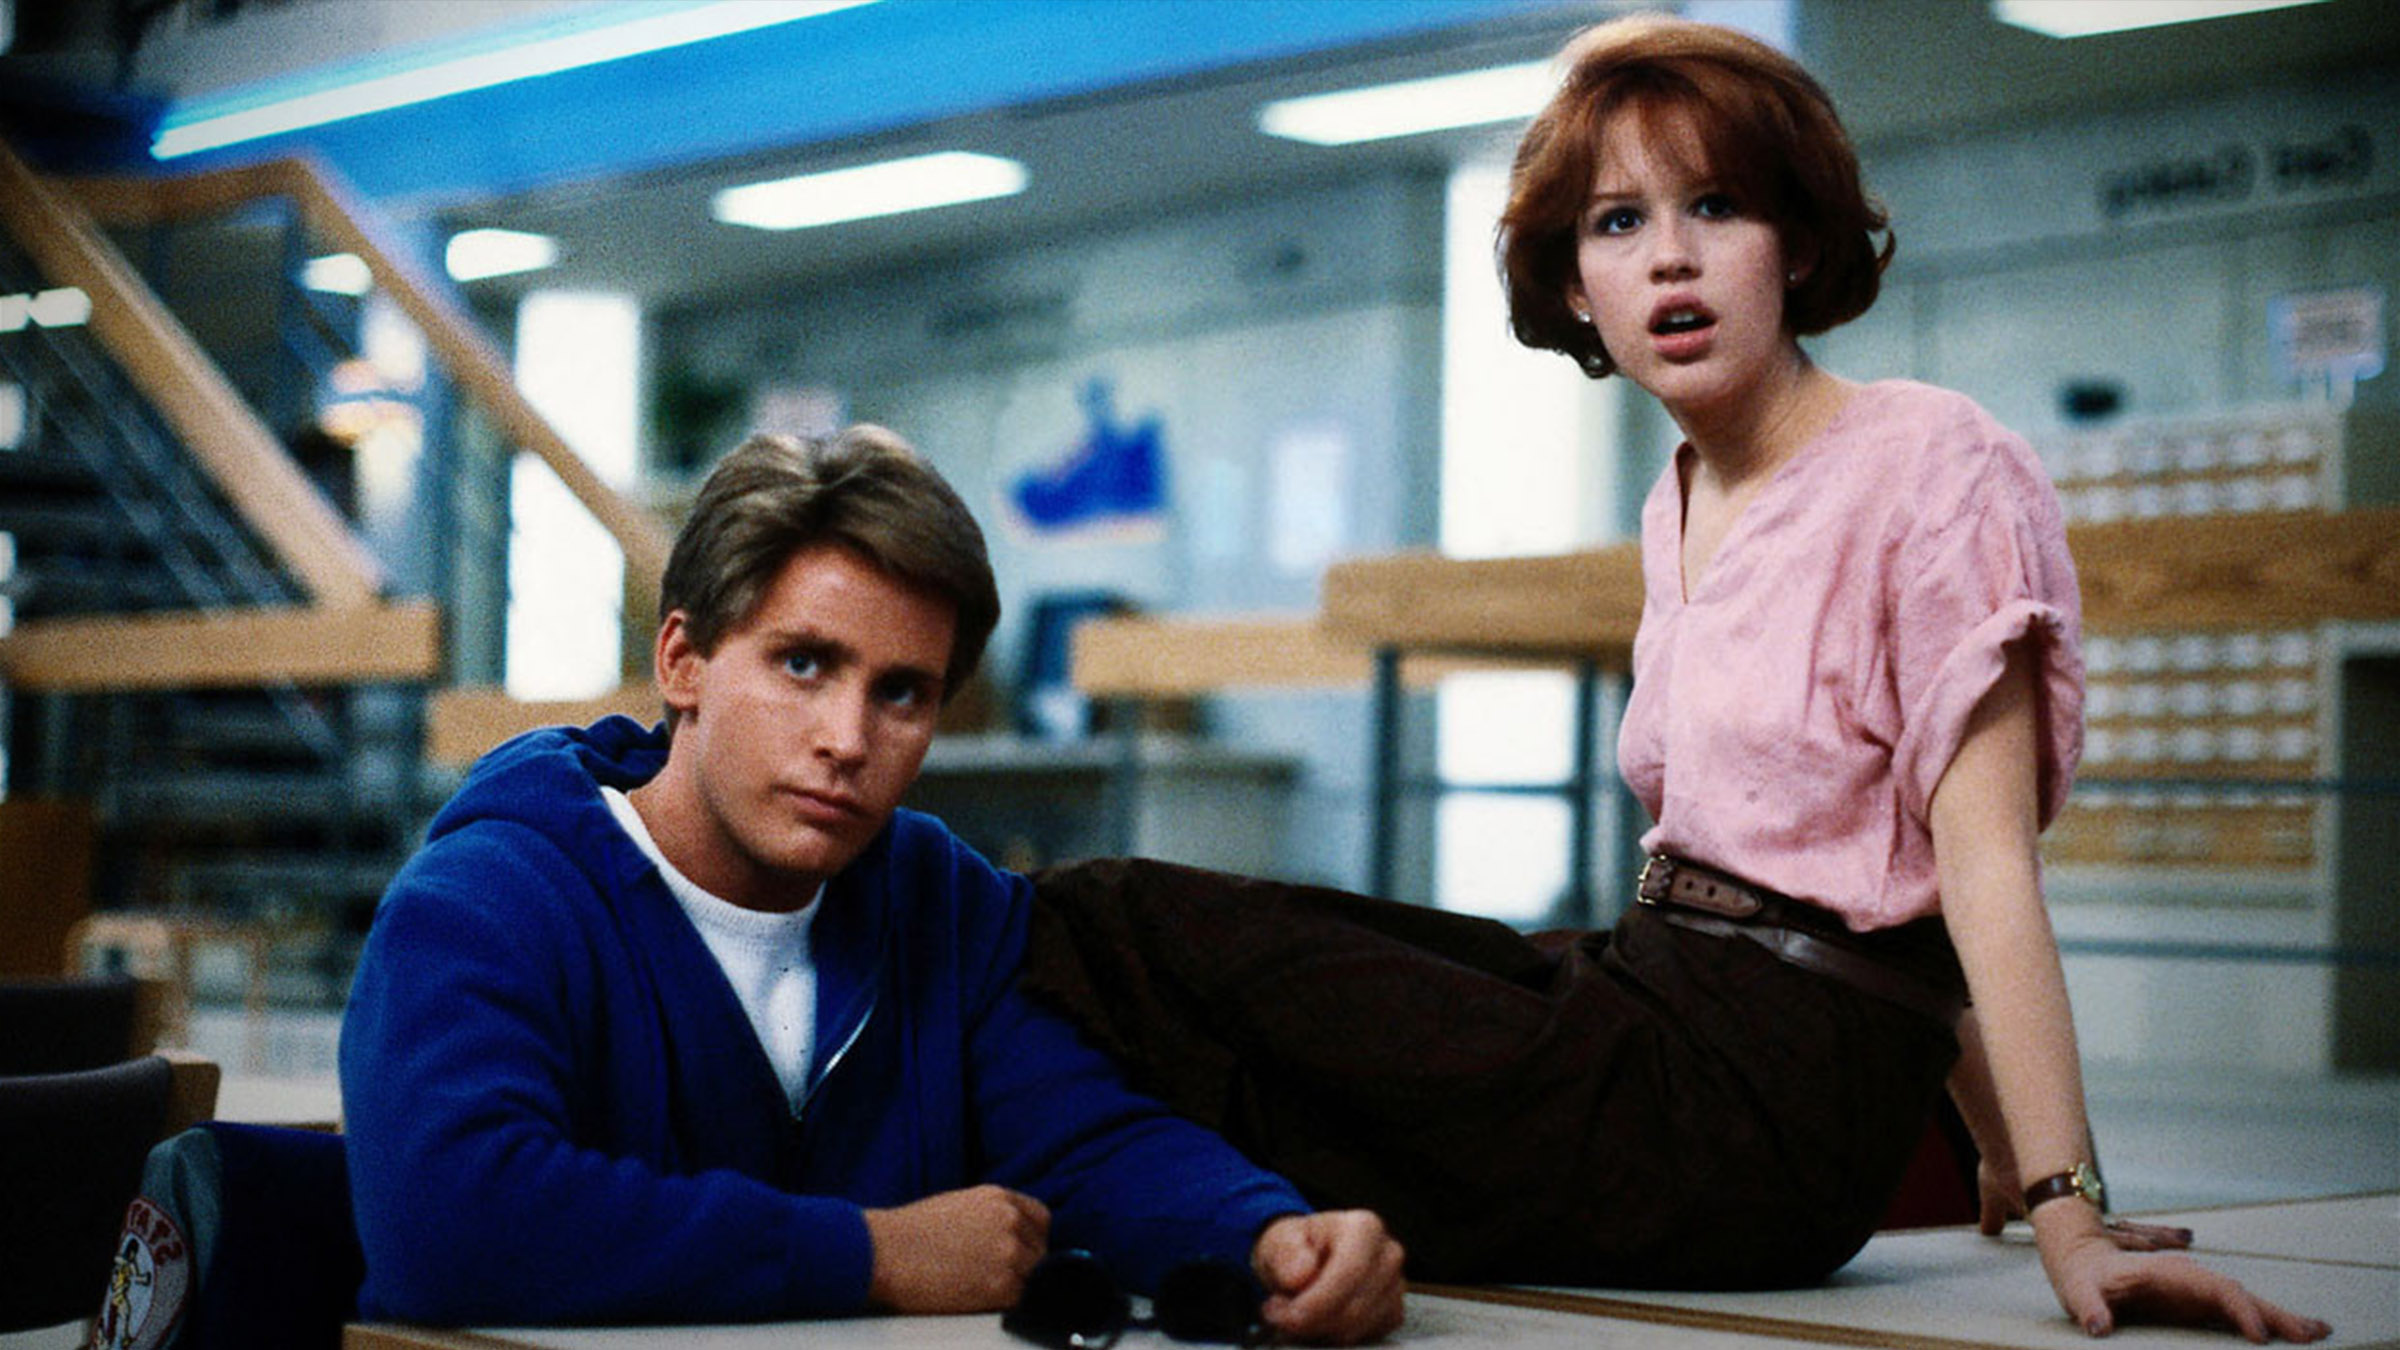 breakfast club summary Beyond being in the same class at shermer high school in shermer, illinois, claire standish, andrew clark, john bender, brian johnson and allison reynolds have little in common, and with the exception of claire and andrew, do not associate with each other in school in the simplest and in their own .